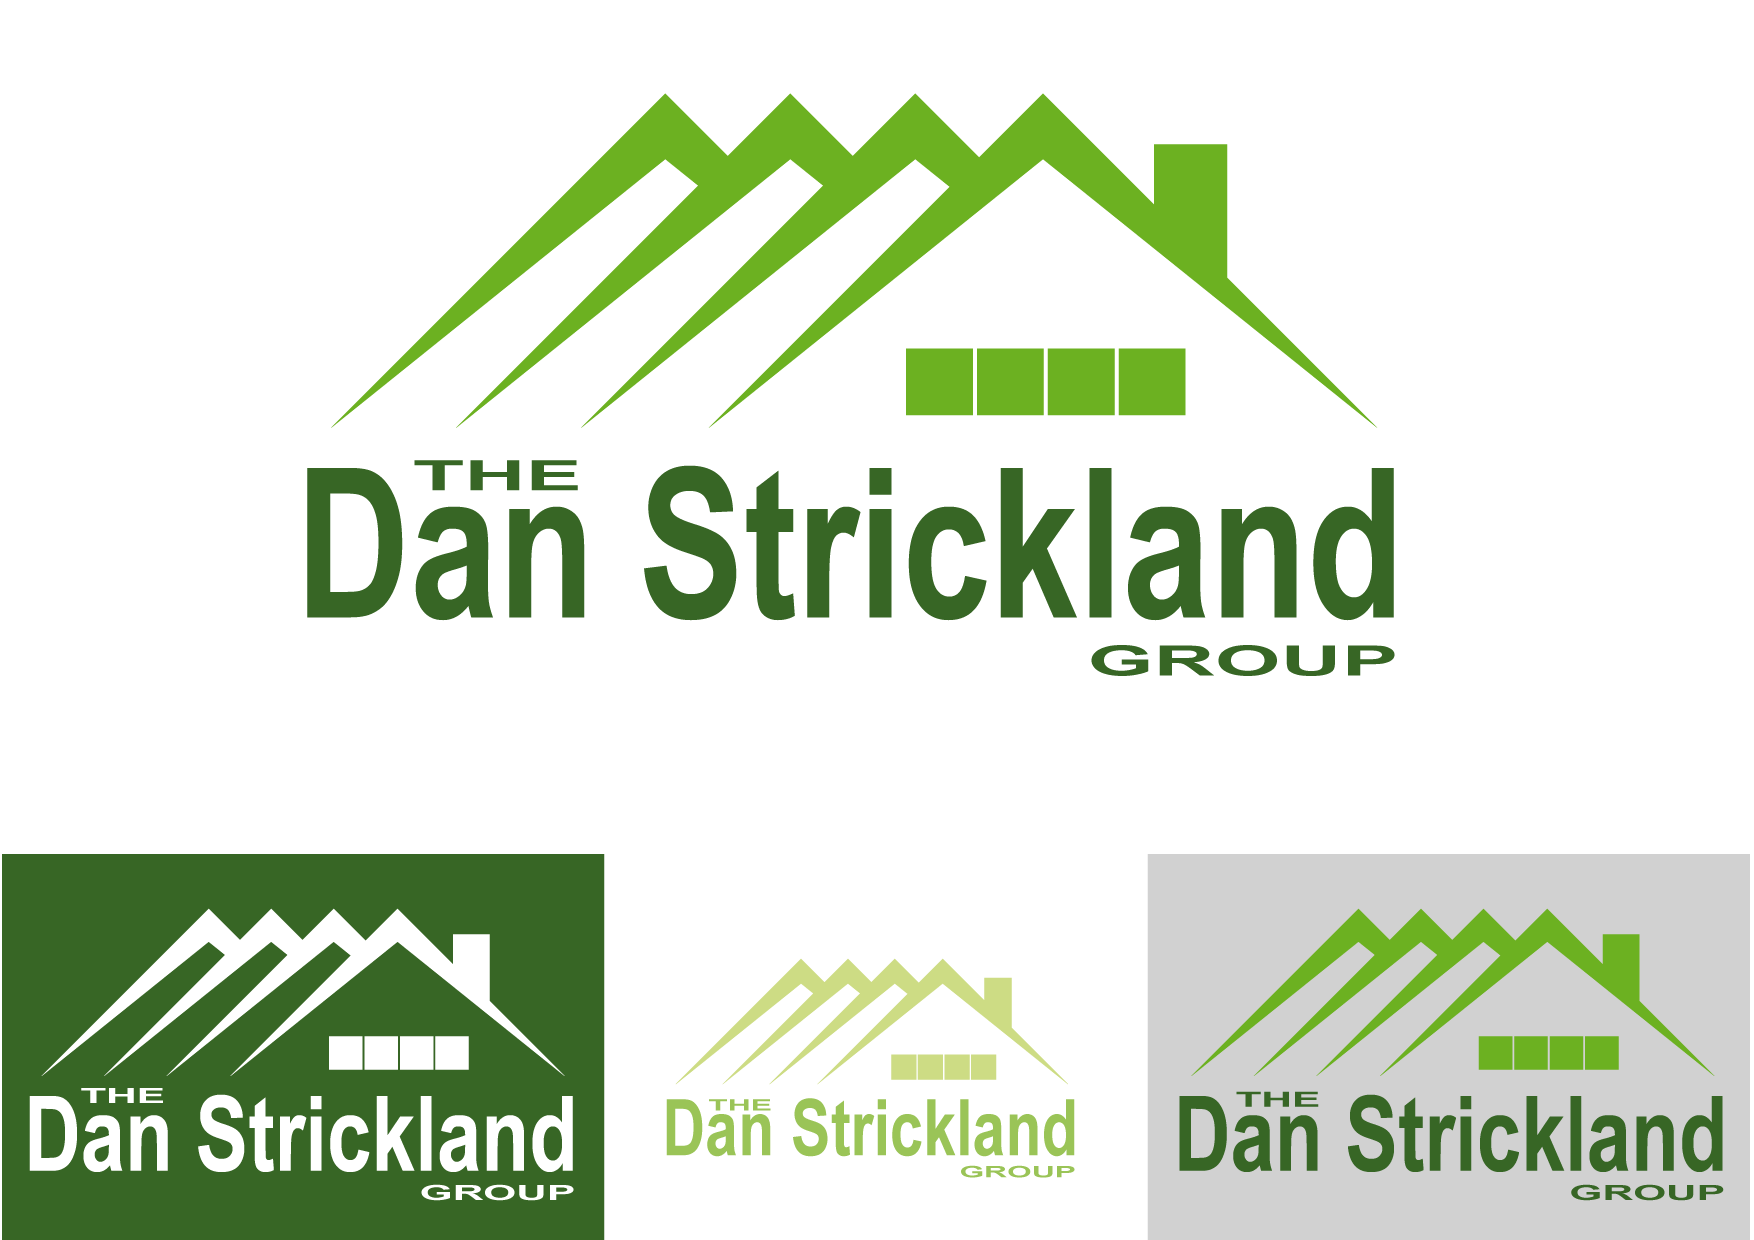 Logo Design by Kenan çete - Entry No. 356 in the Logo Design Contest Creative Logo Design for The Dan Strickland Group.